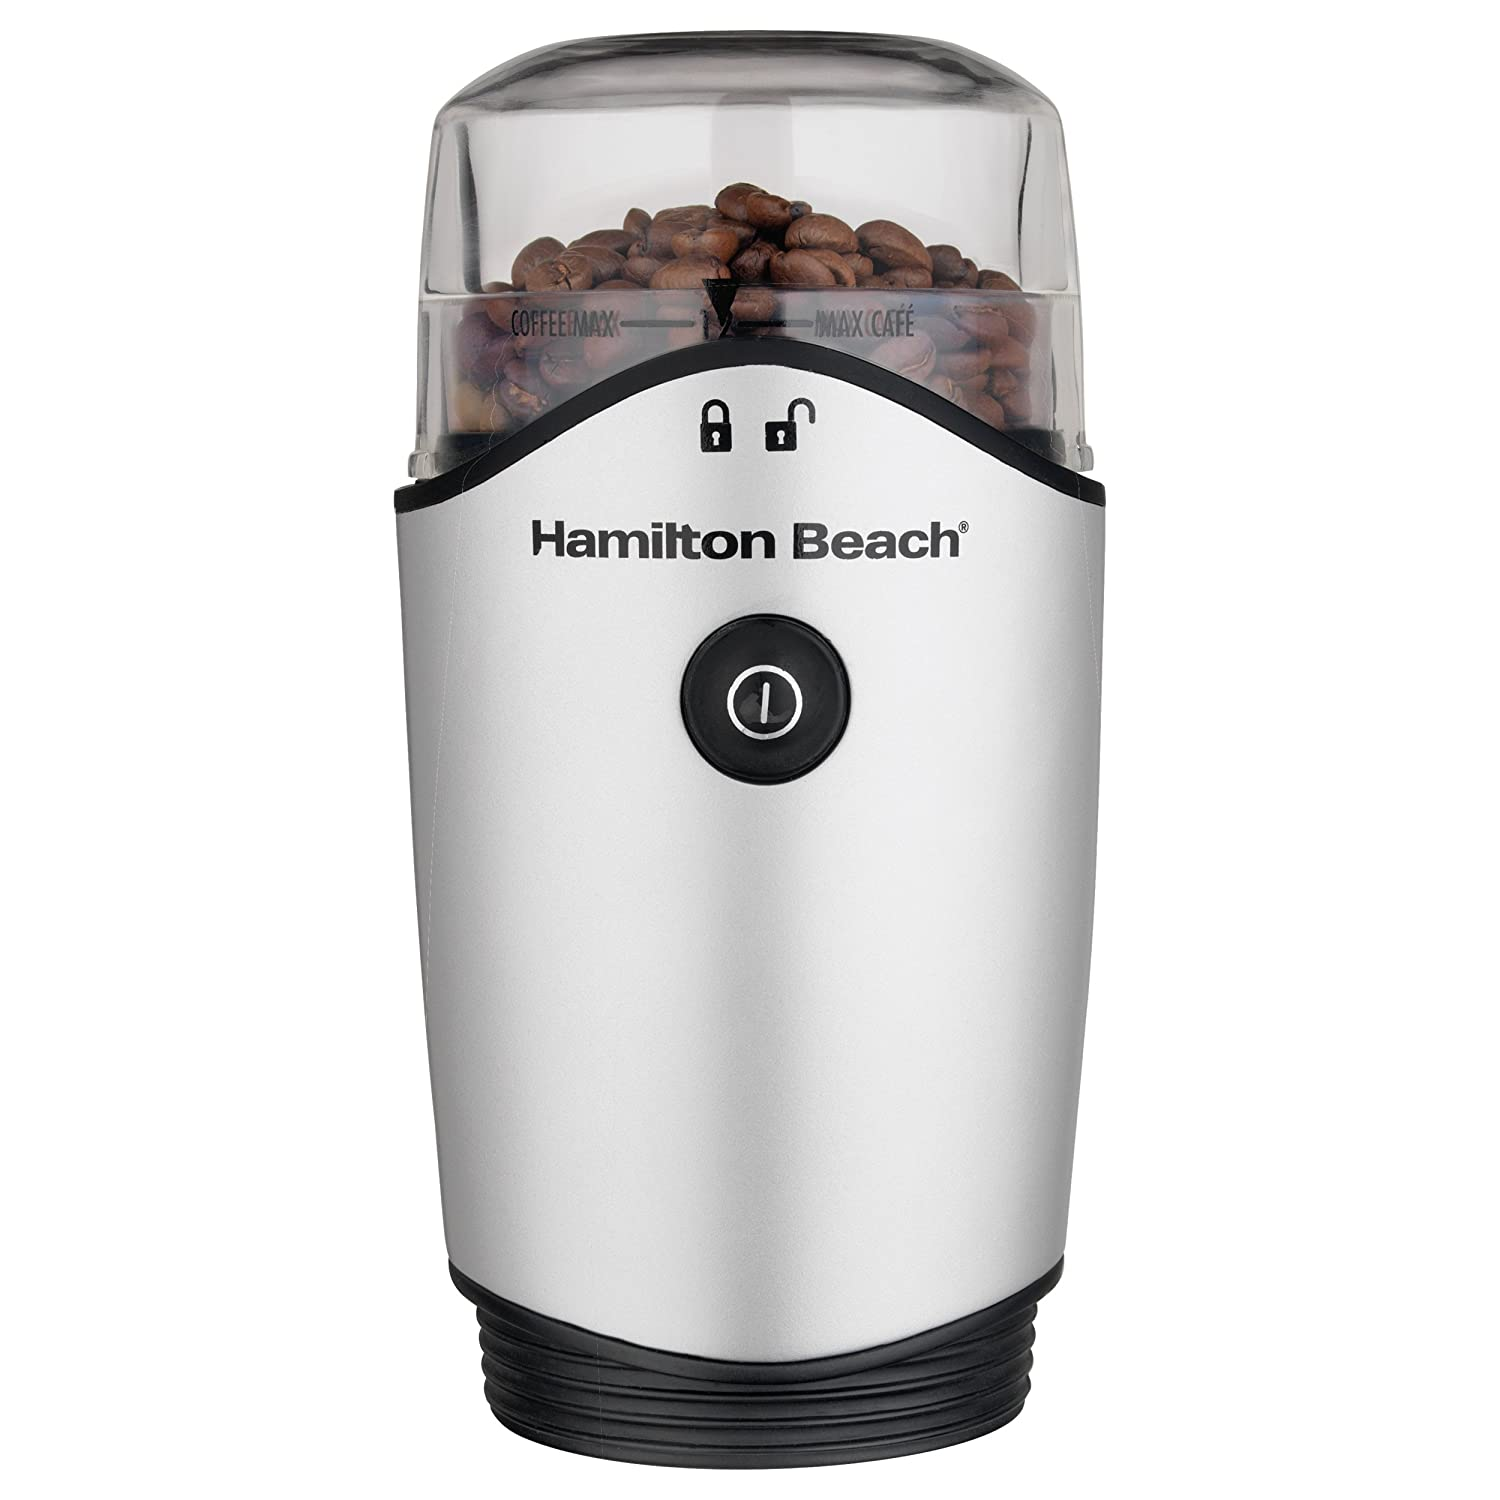 Hamilton Beach HB Coffee Grinder